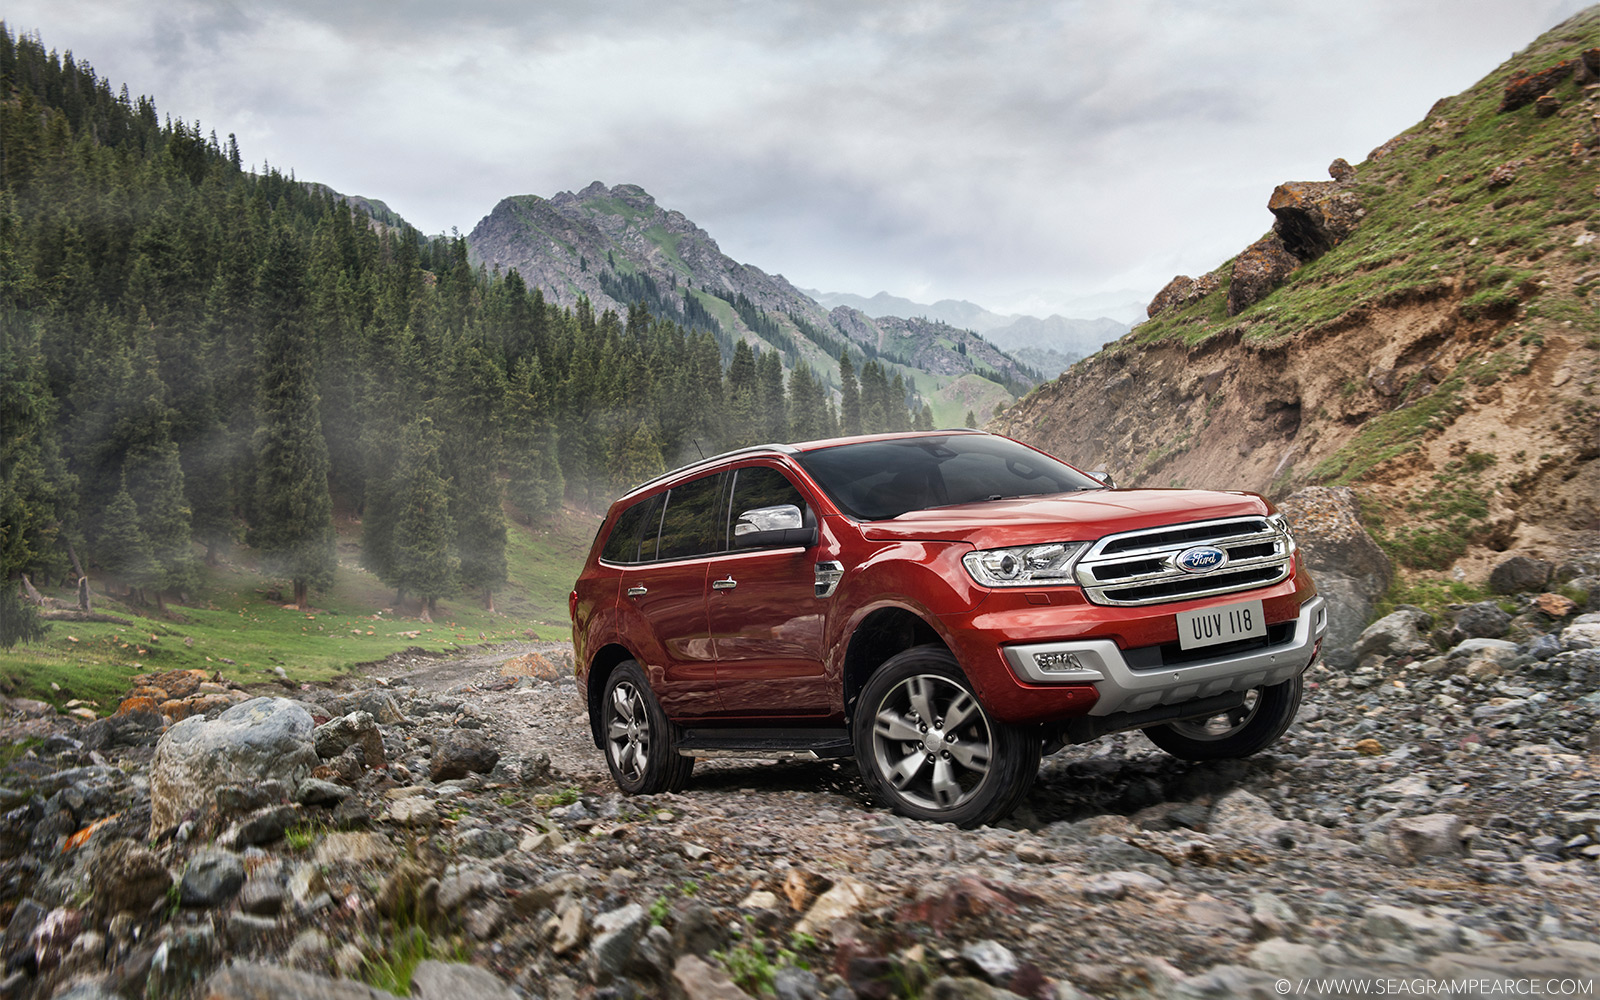 Ford | Everest Mountain Rocks | Seagram Pearce Photography